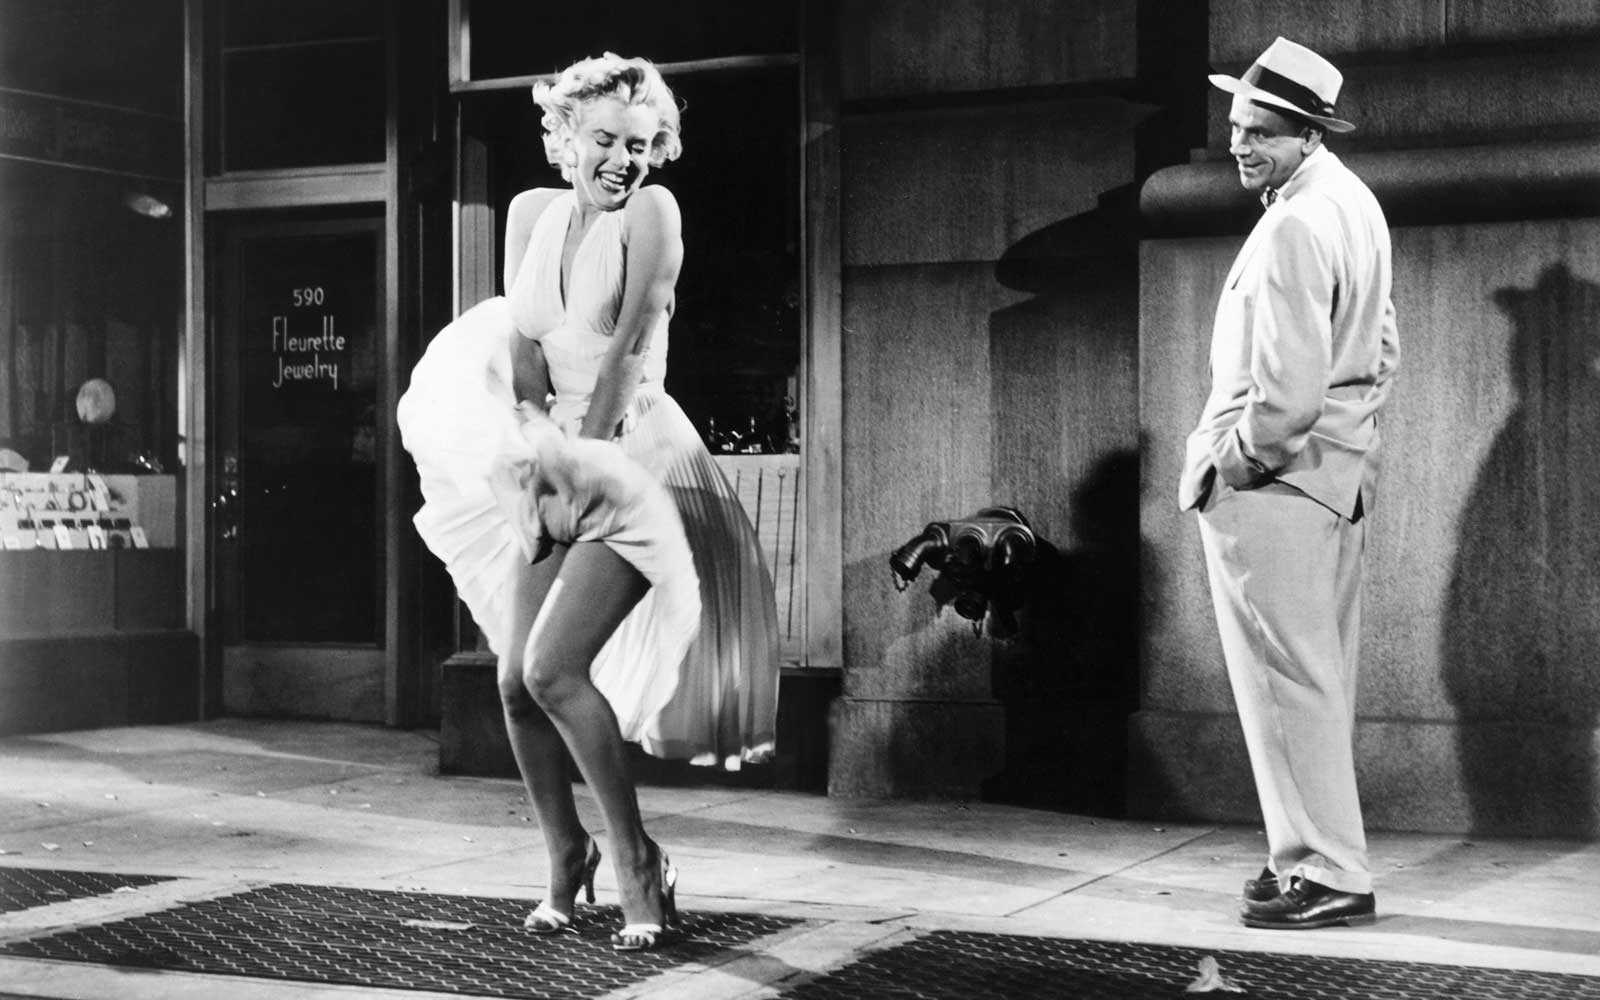 This Is Your Last Chance to See Marilyn Monroe's White Dress Before It's Sold at Auction